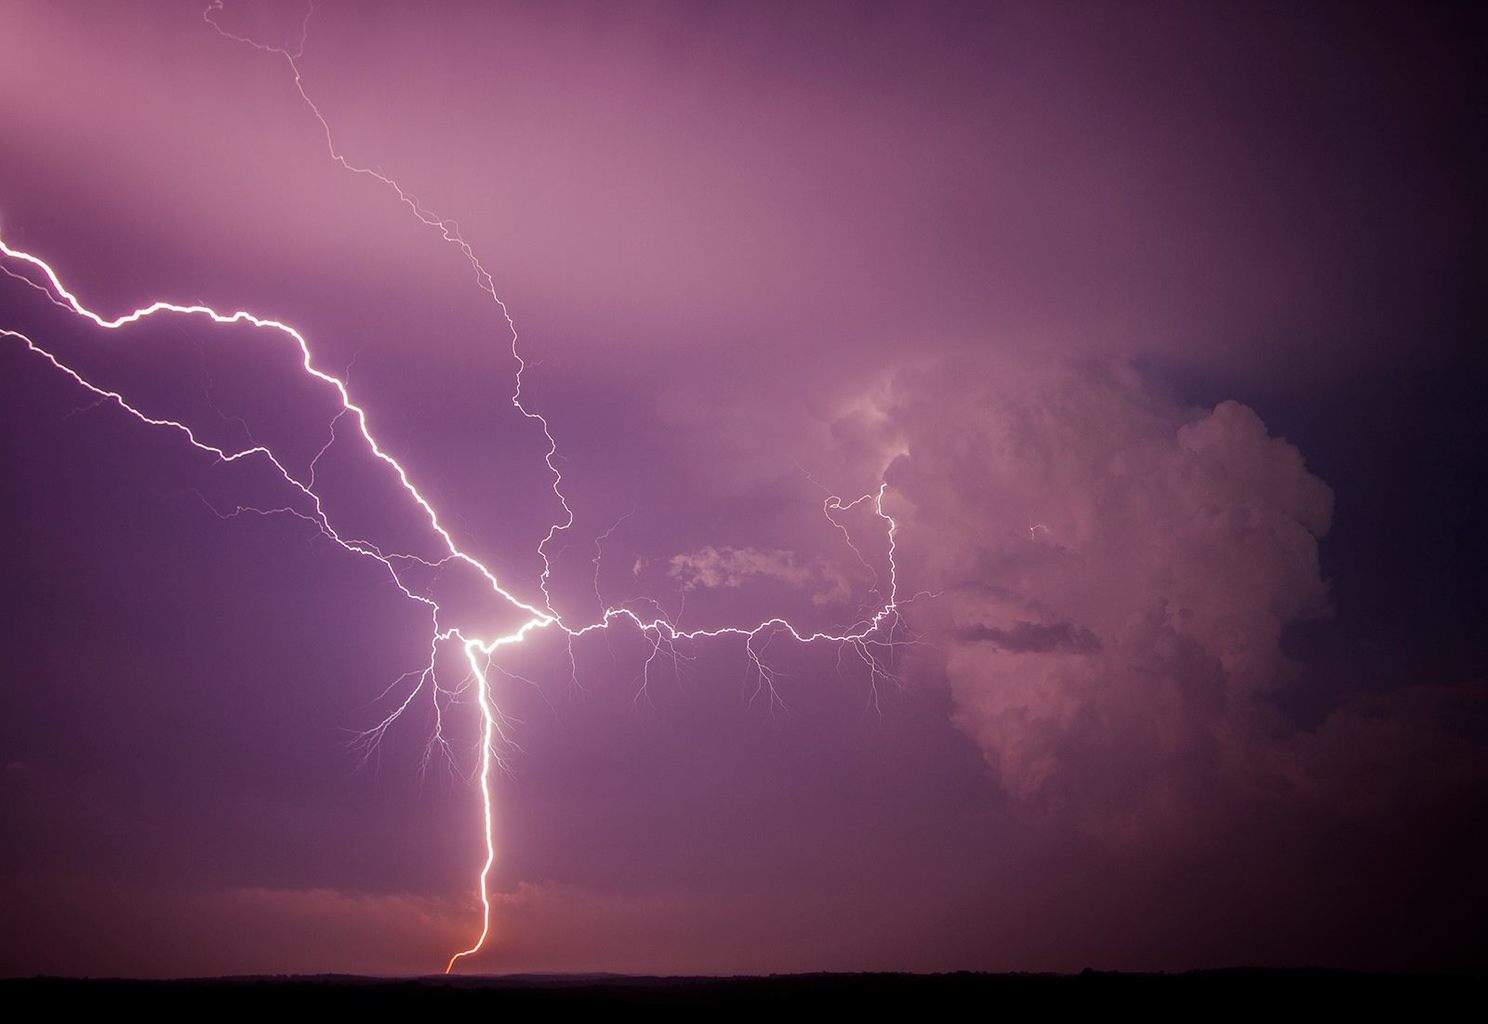 Some of the crazy, out of this world lightning in central Nebraska near Broken Bow on May 26 2013.